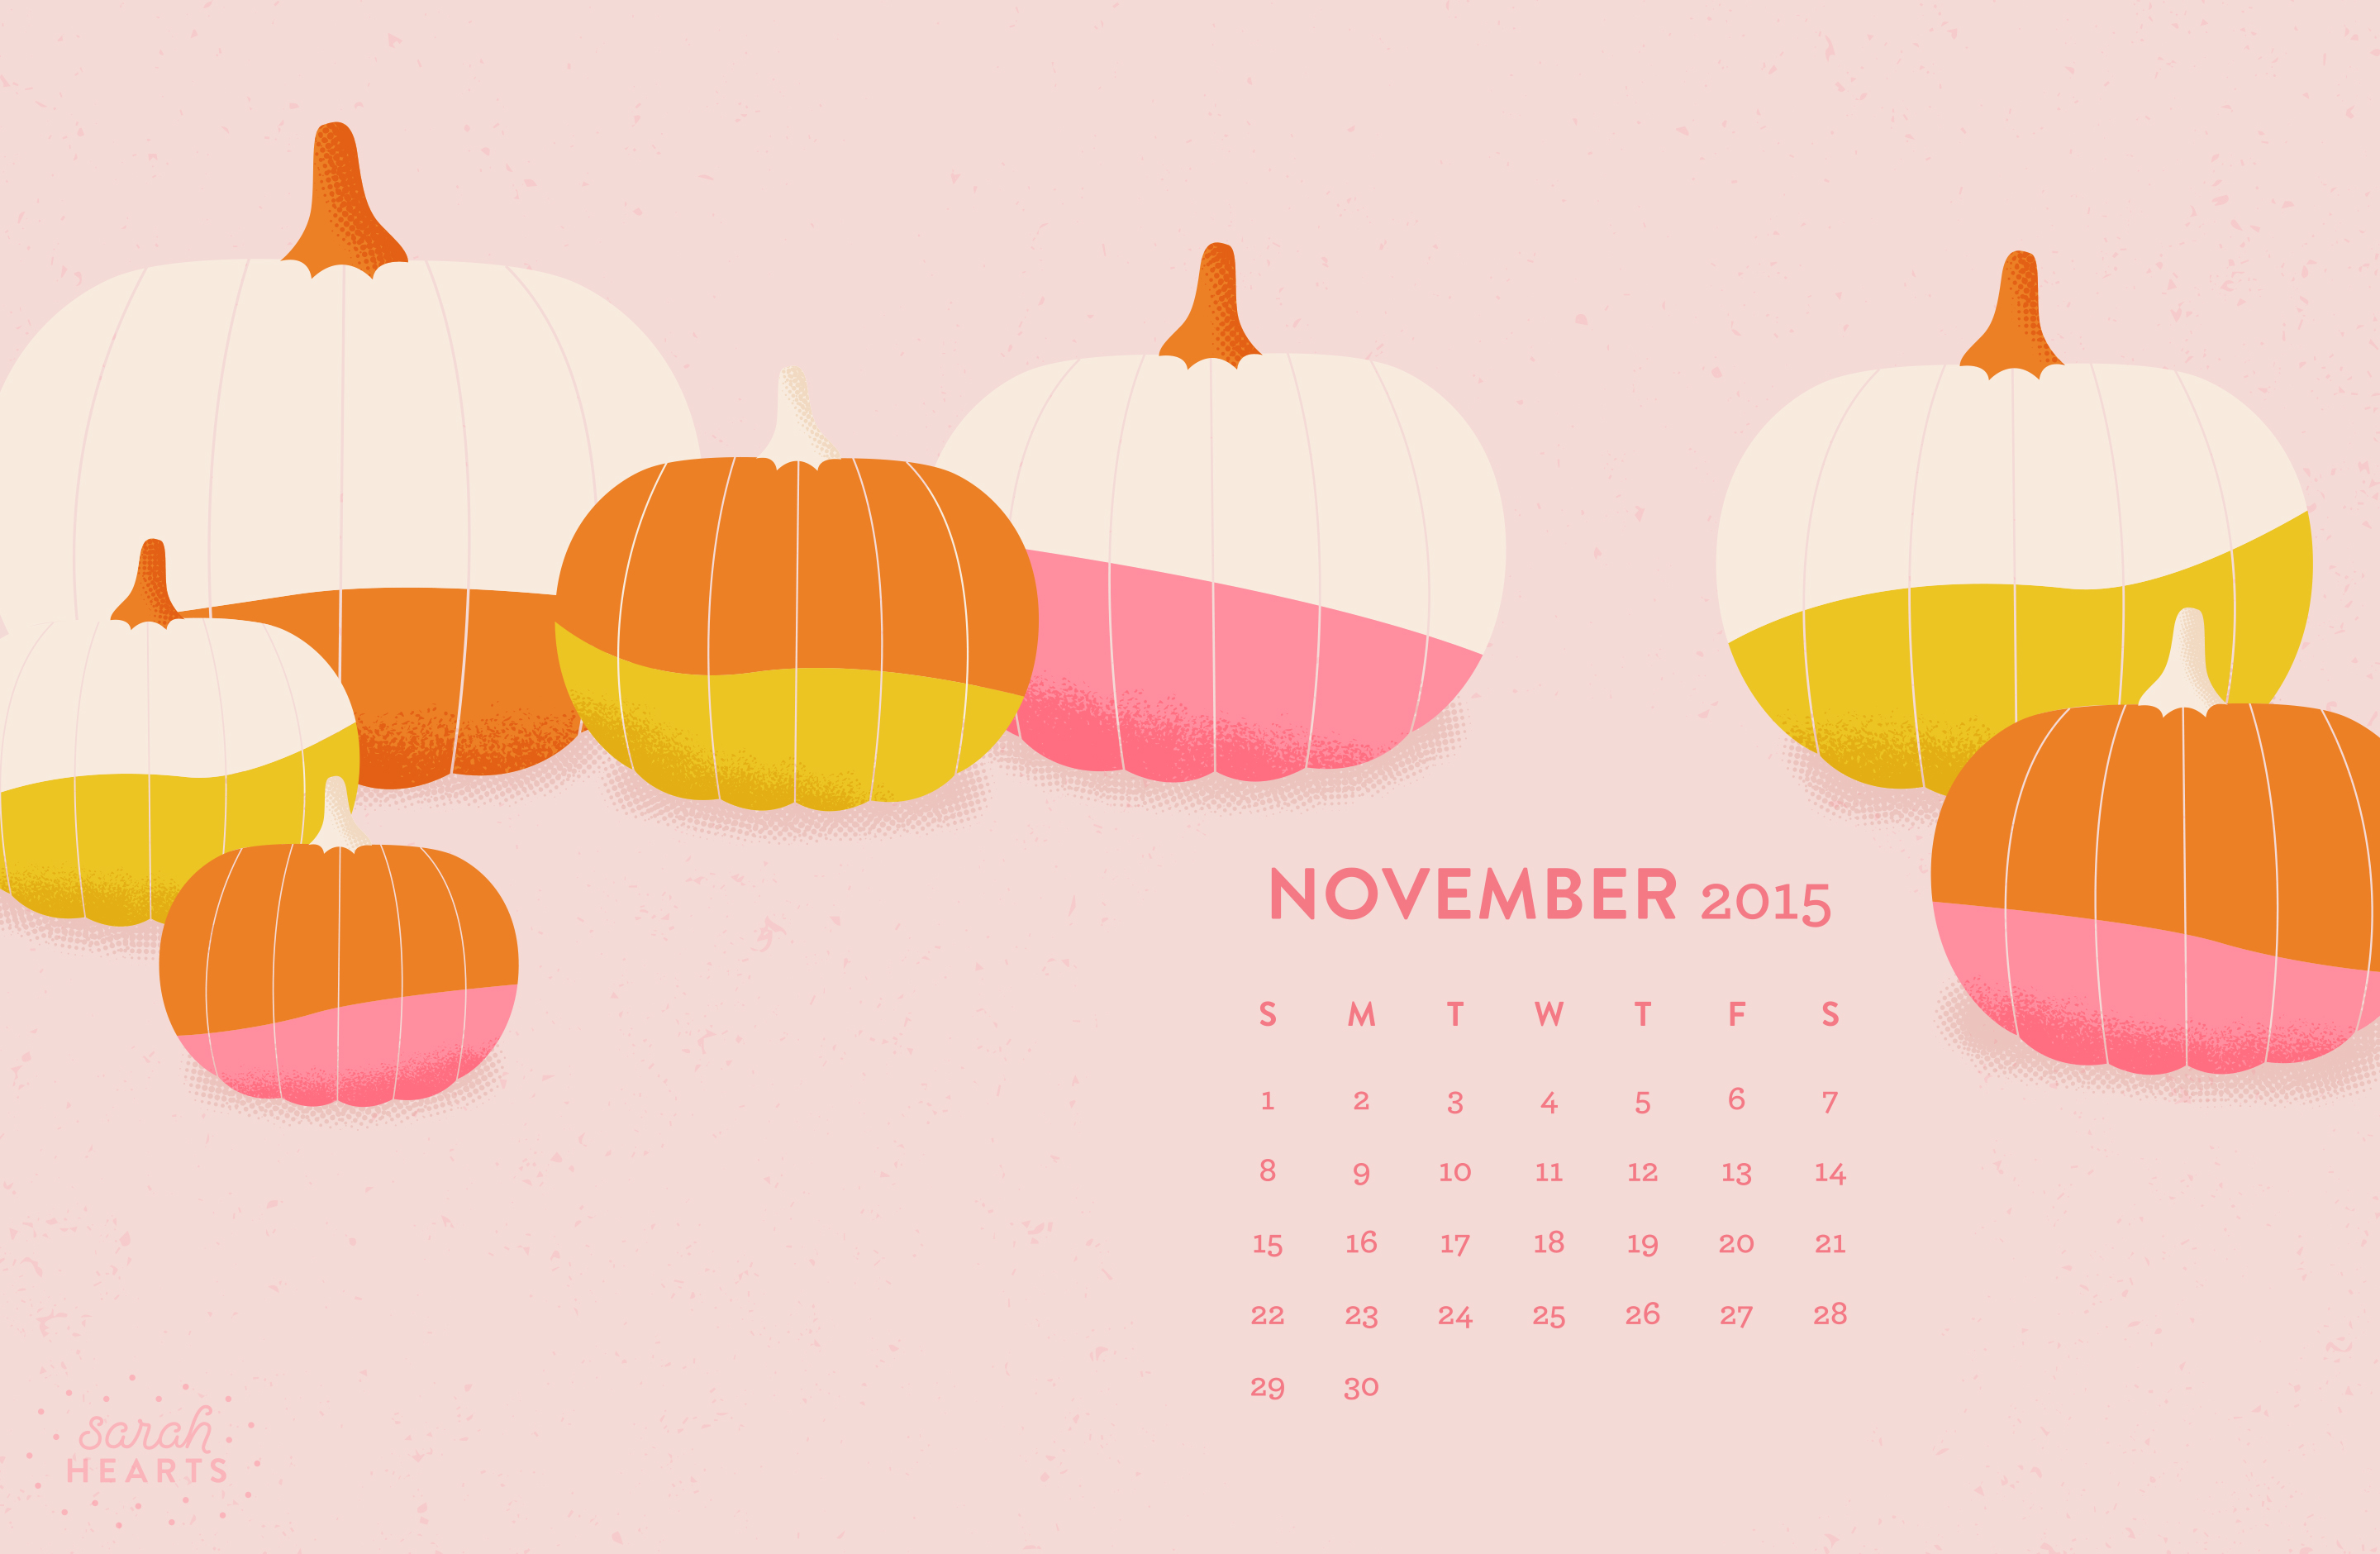 November Calendar Wallpaper For Iphone : November calendar wallpaper sarah hearts